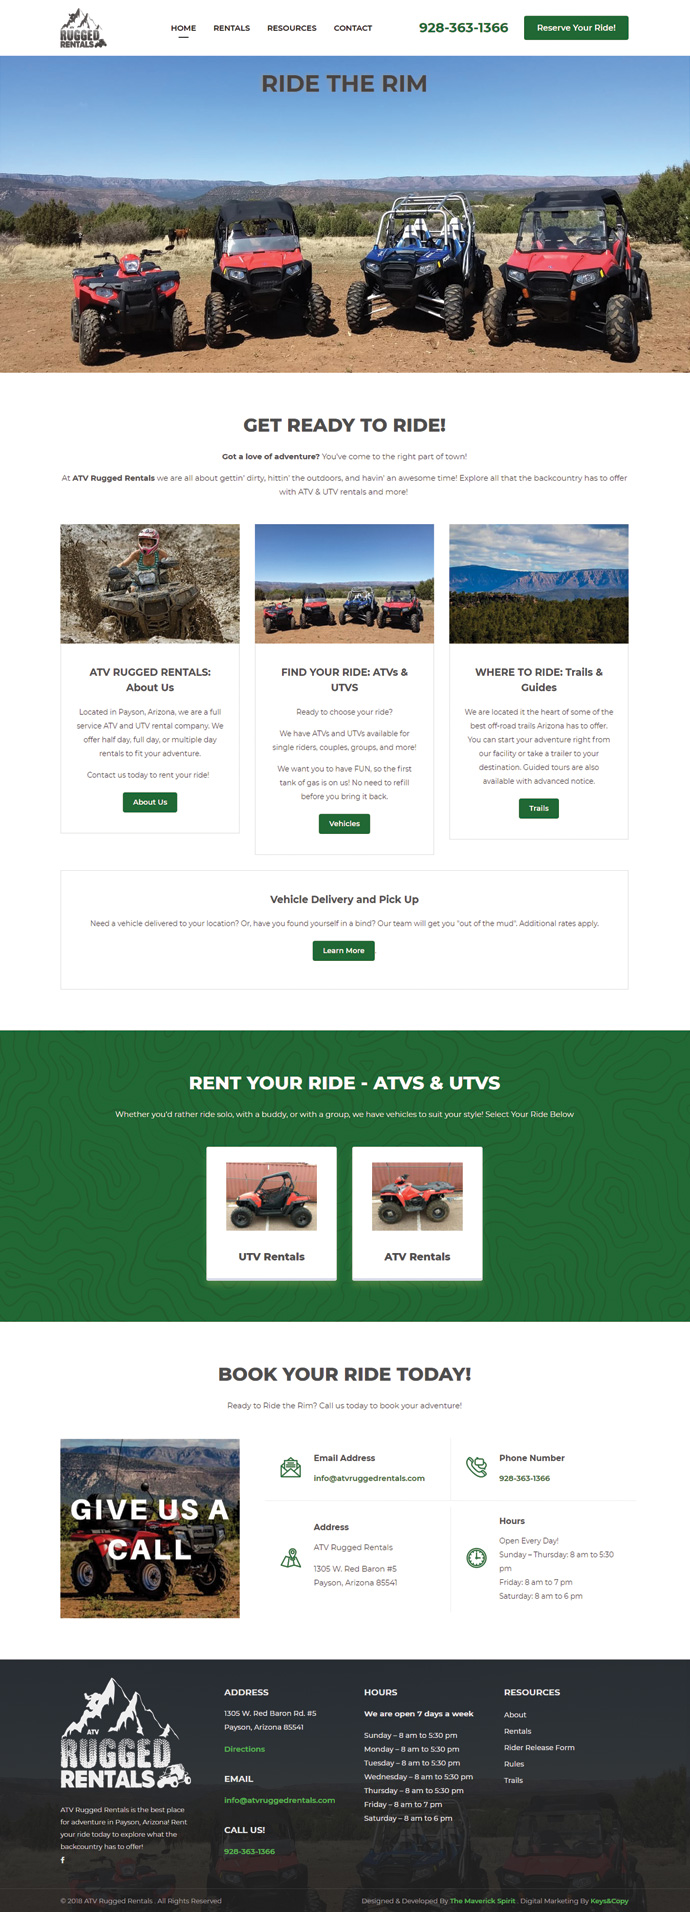 atv-rugged-rentals-payson-az-ride-the-rim-thememantis